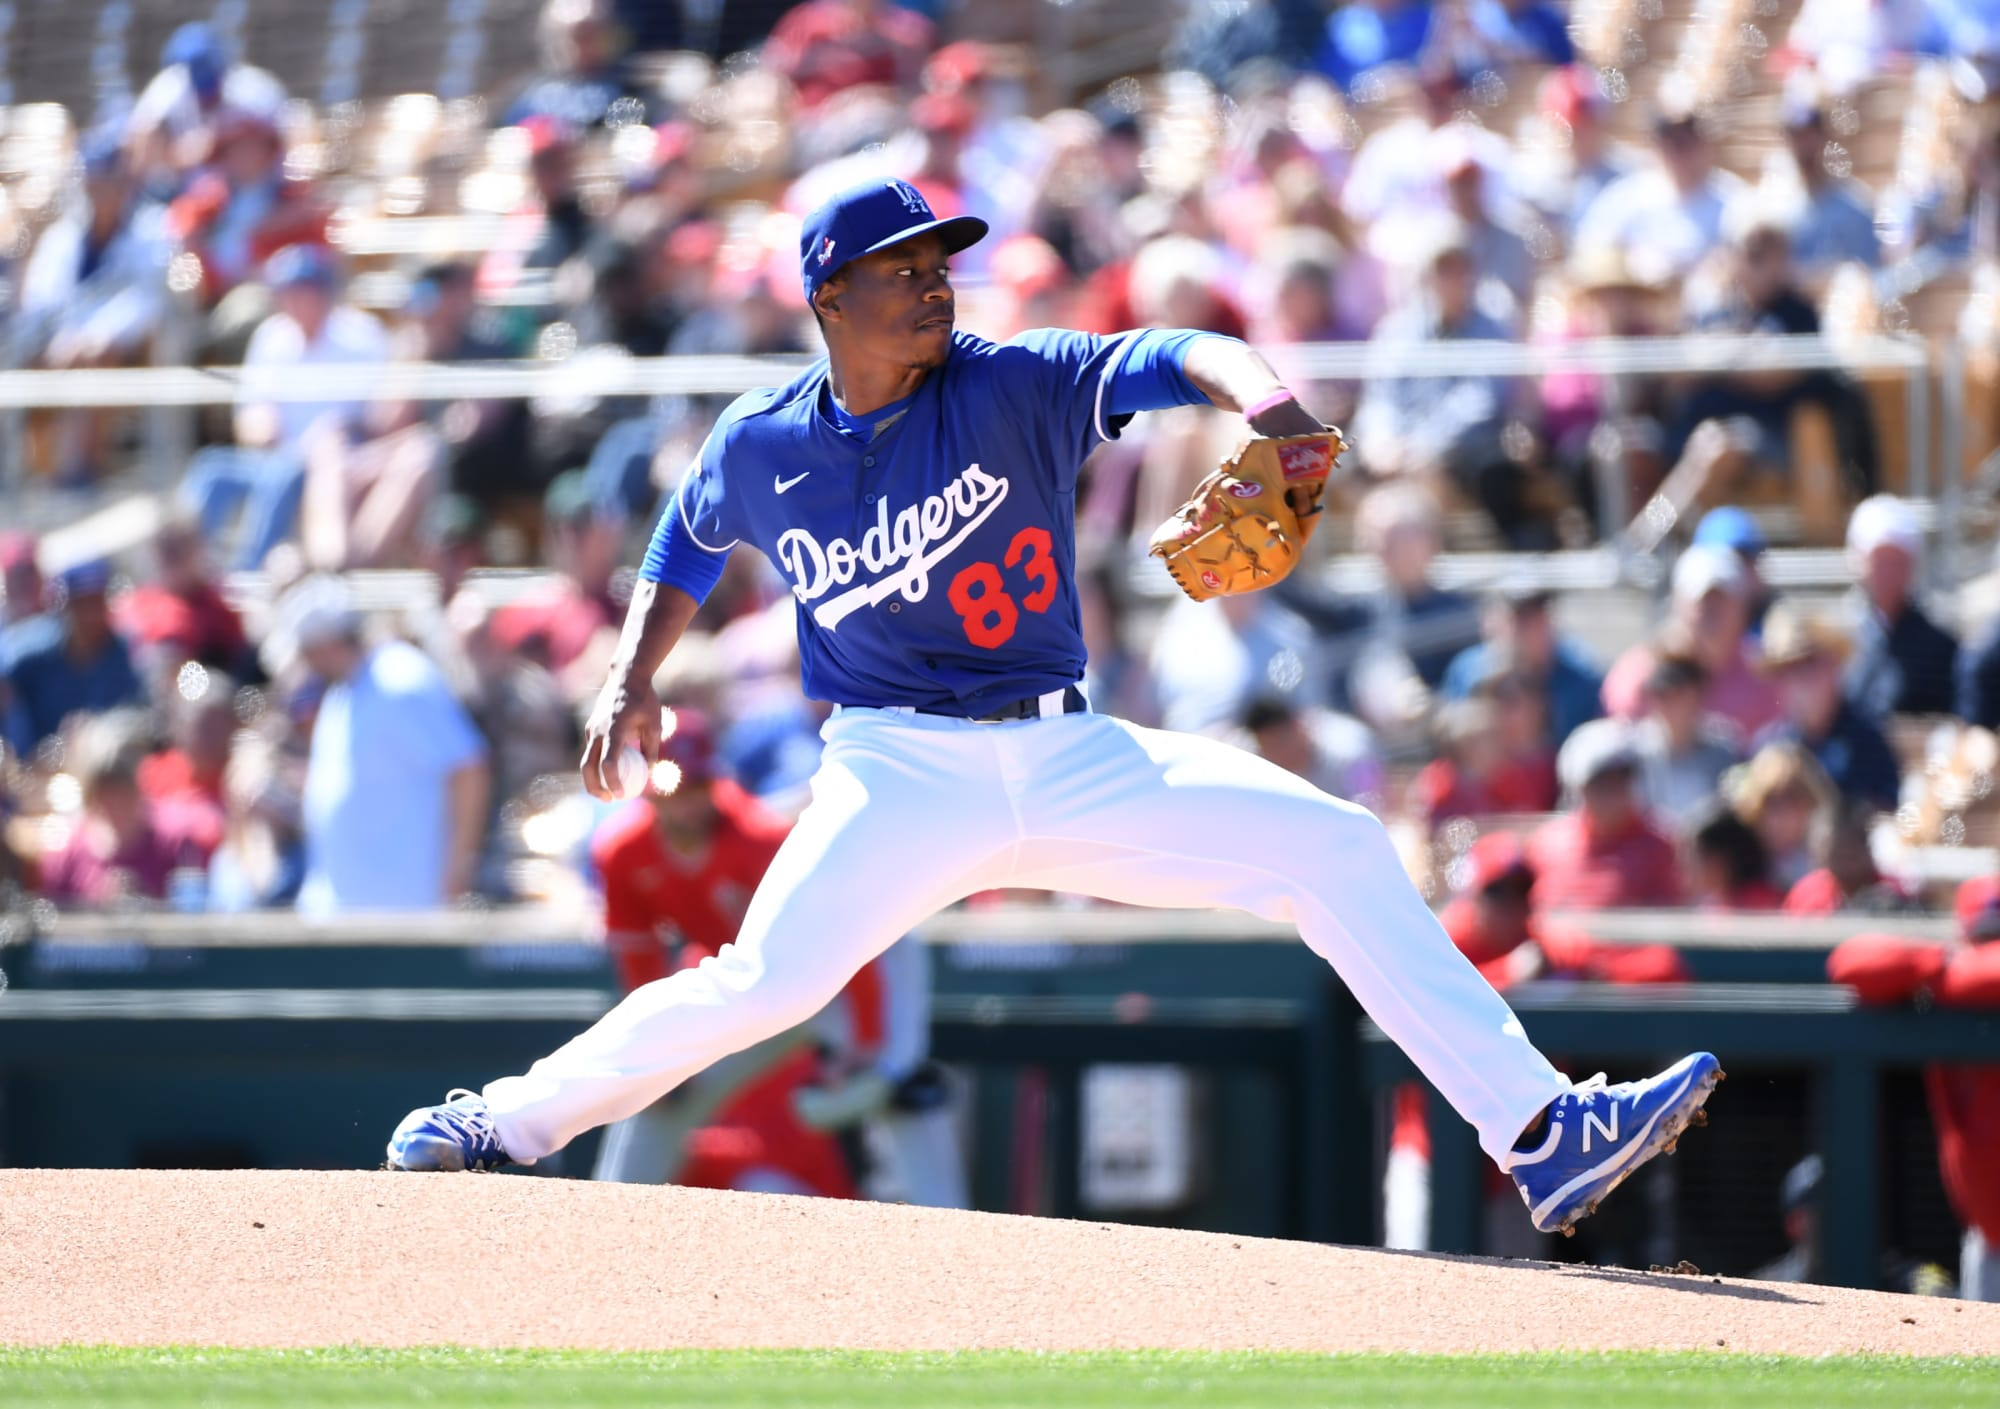 Dodgers: Josiah Gray dominated in Triple-A debut this week